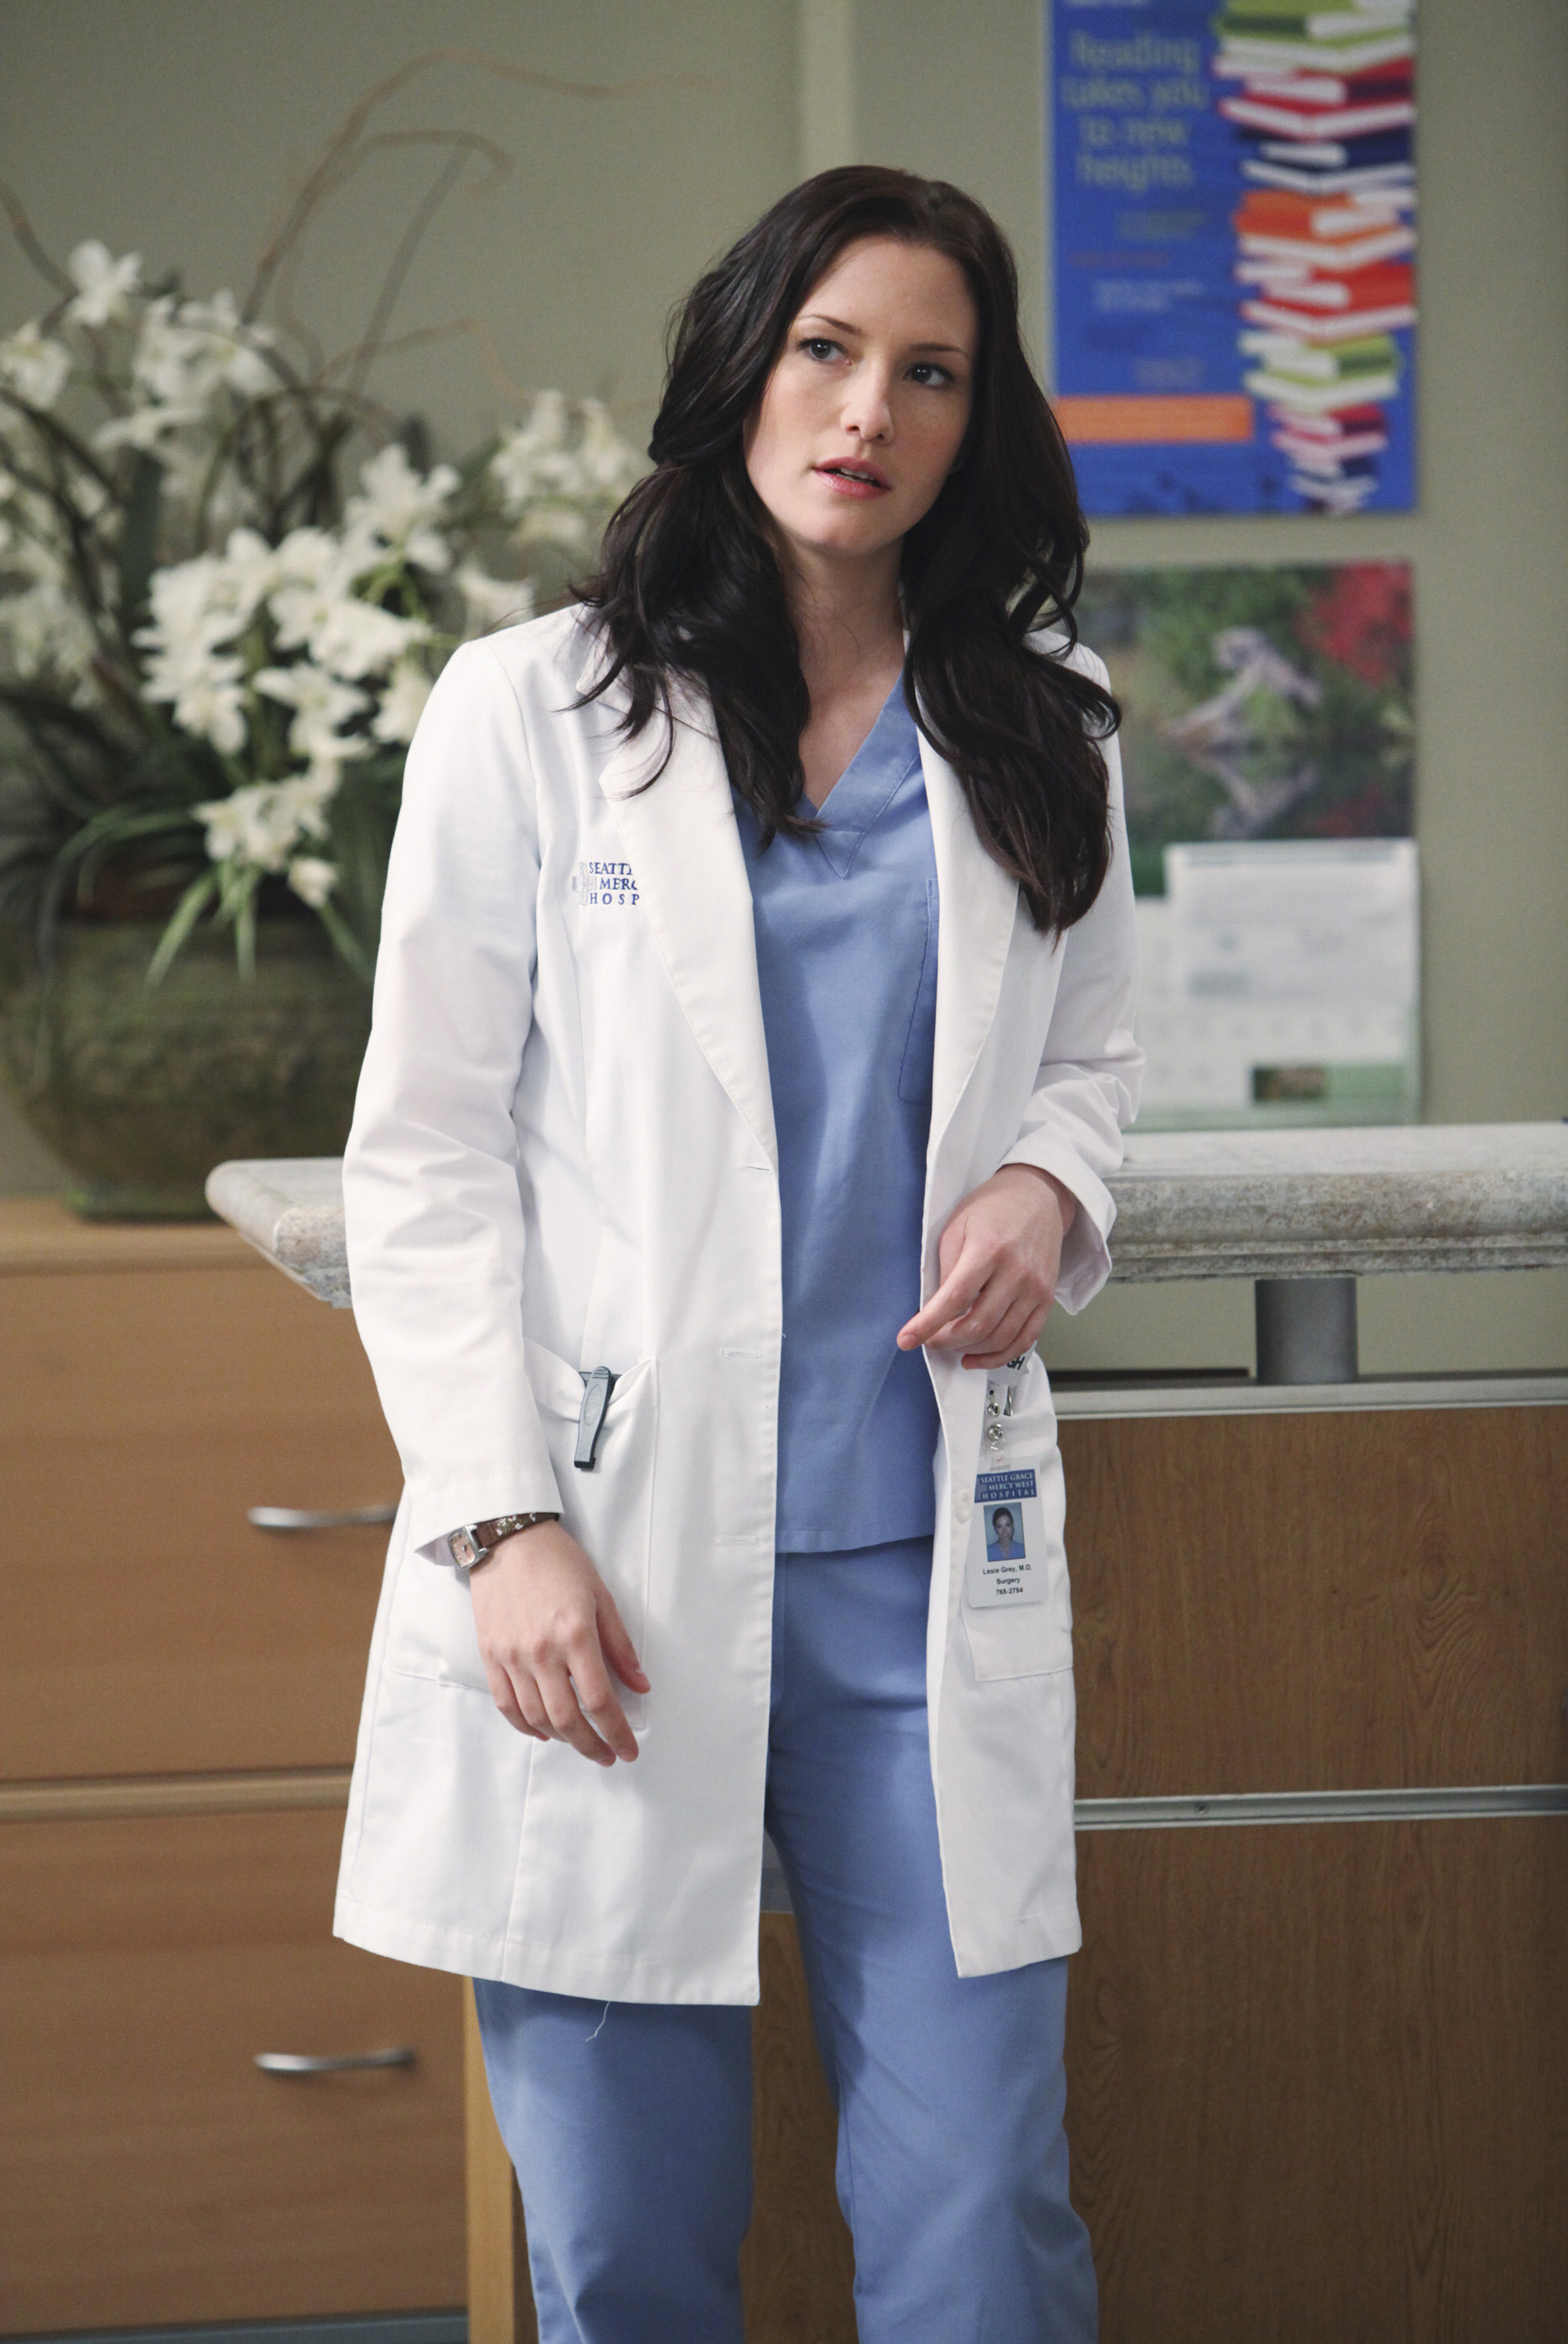 No. 15: Dr. Lexie Grey